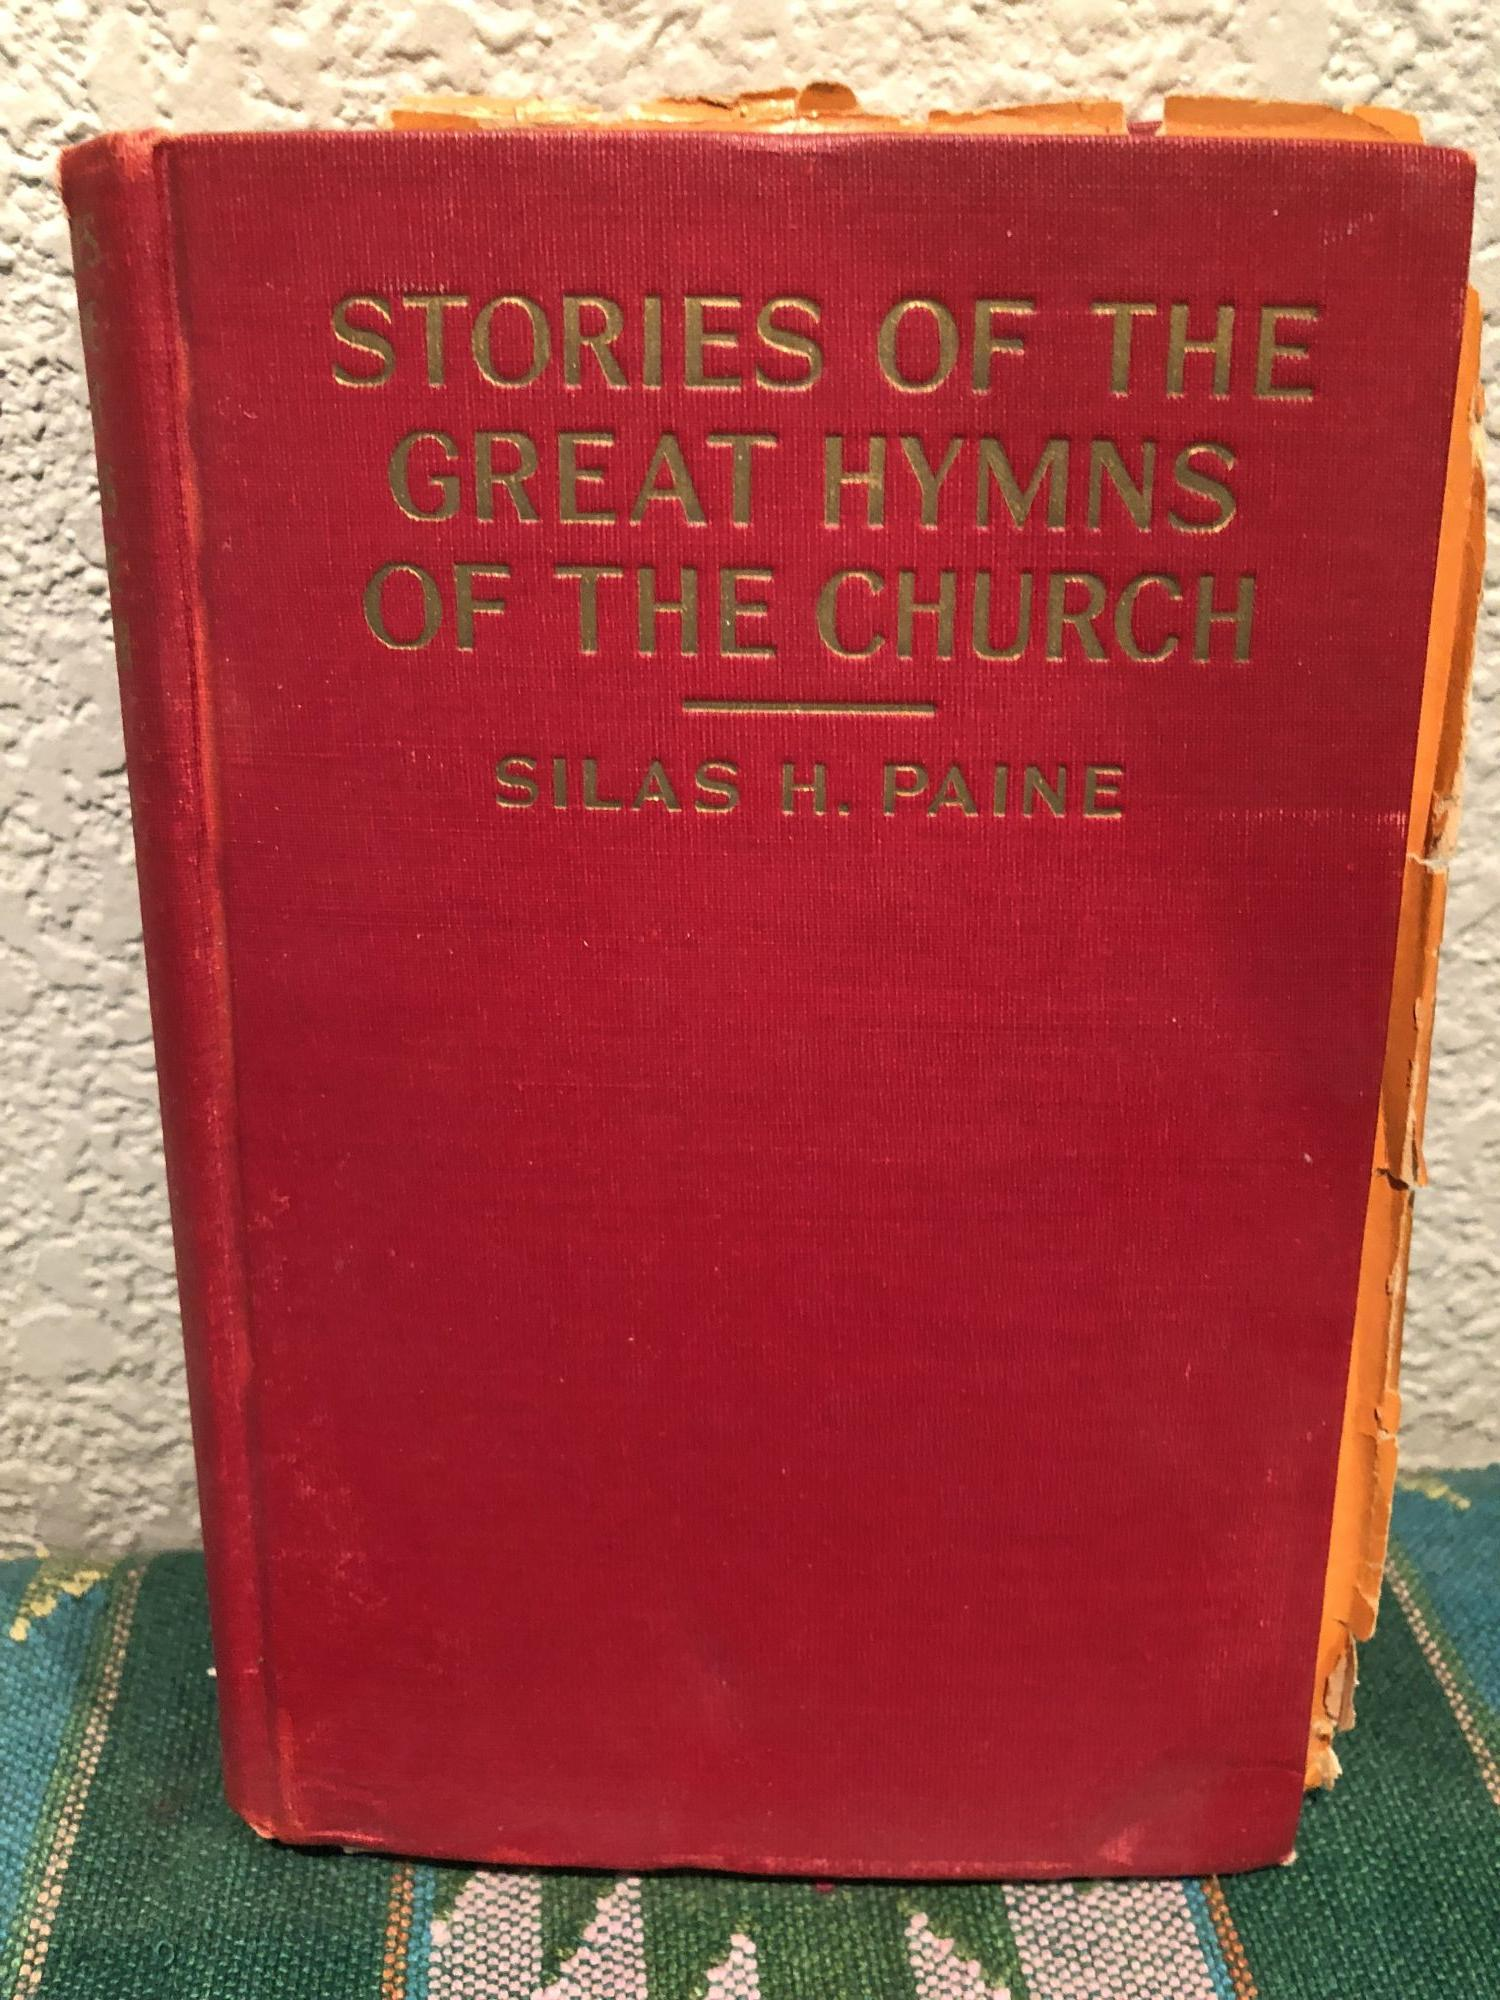 Stories of the Great Hymns of the church